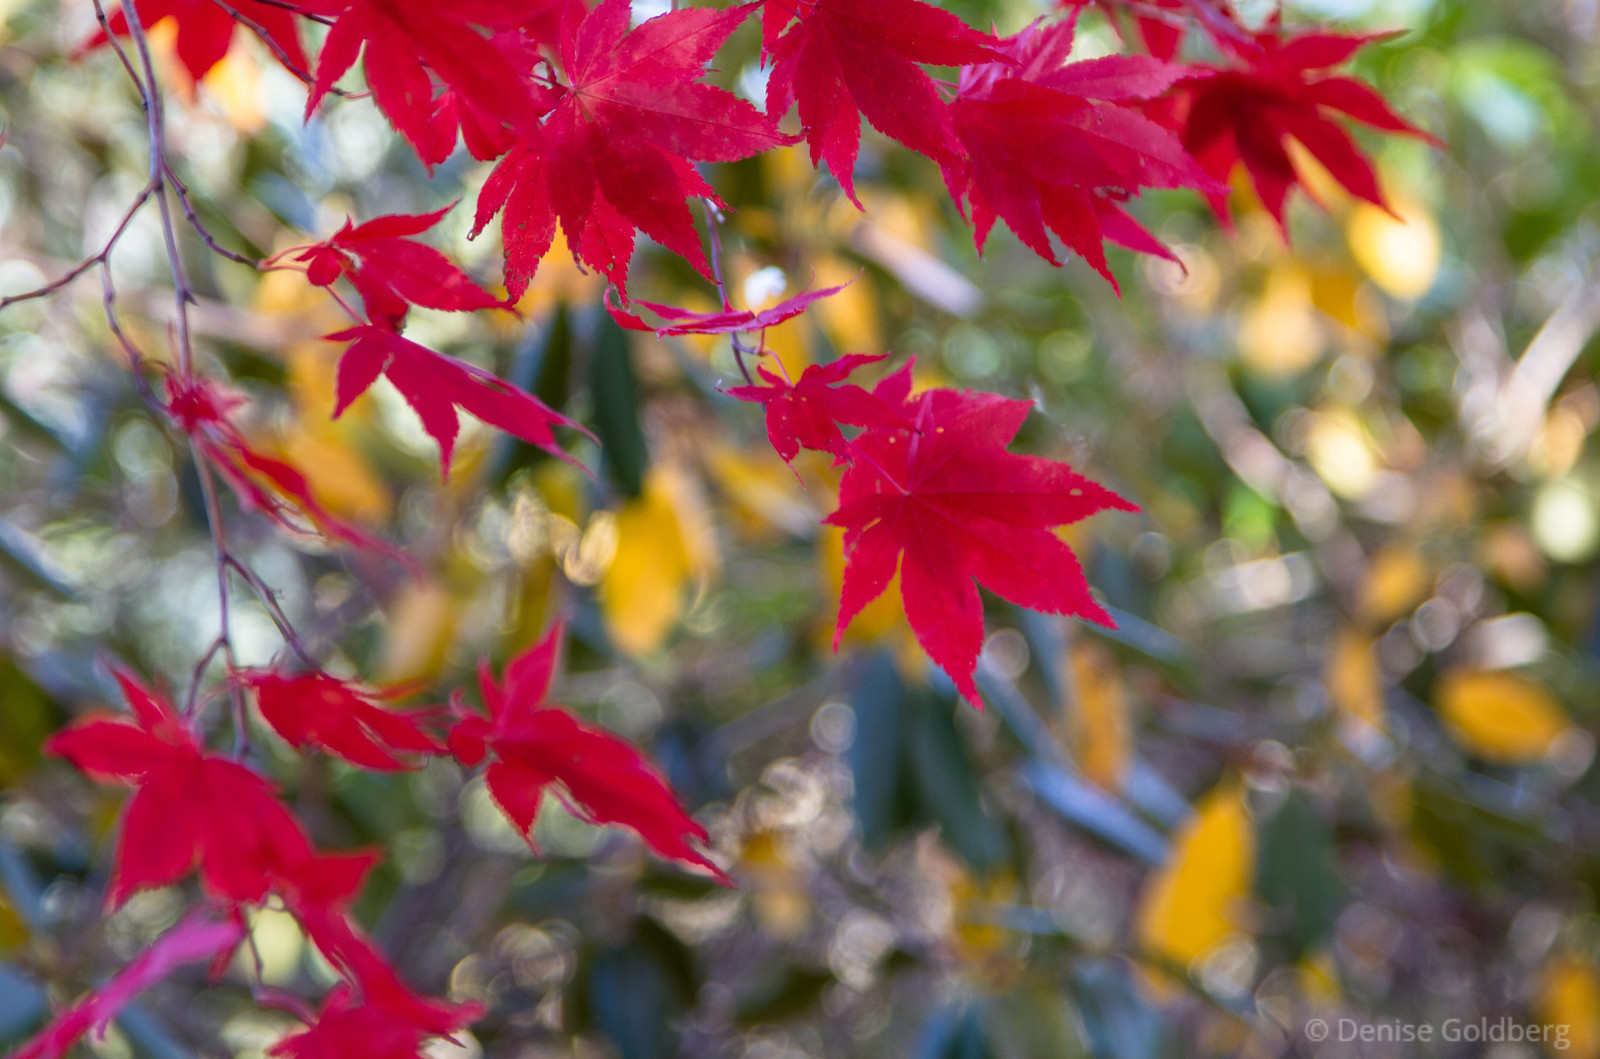 leaves of a Japanese Maple, in bright red